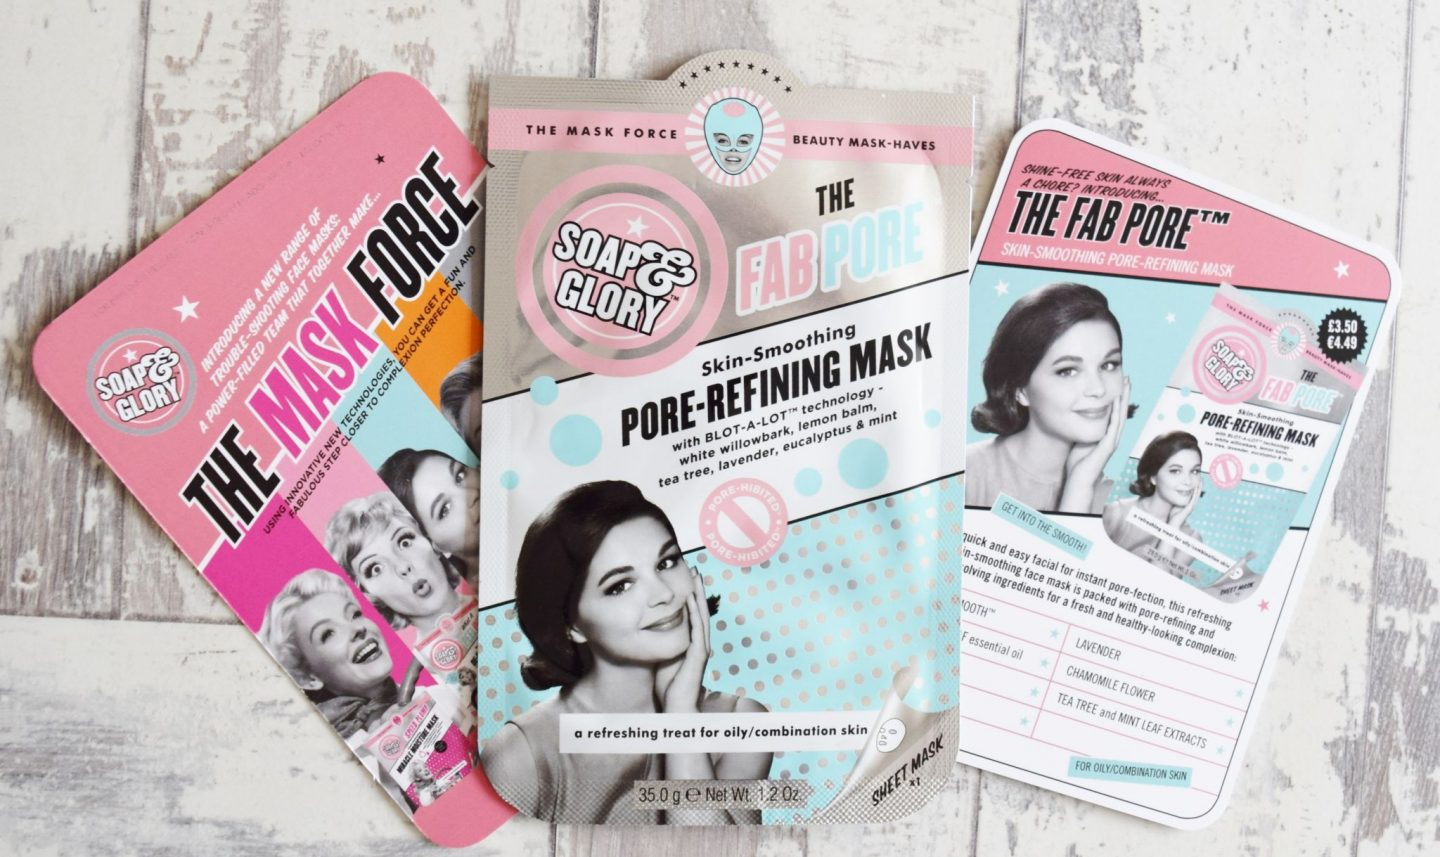 Soap & Glory The Fab Pore Skin Smoothing Pore-Refining Mask